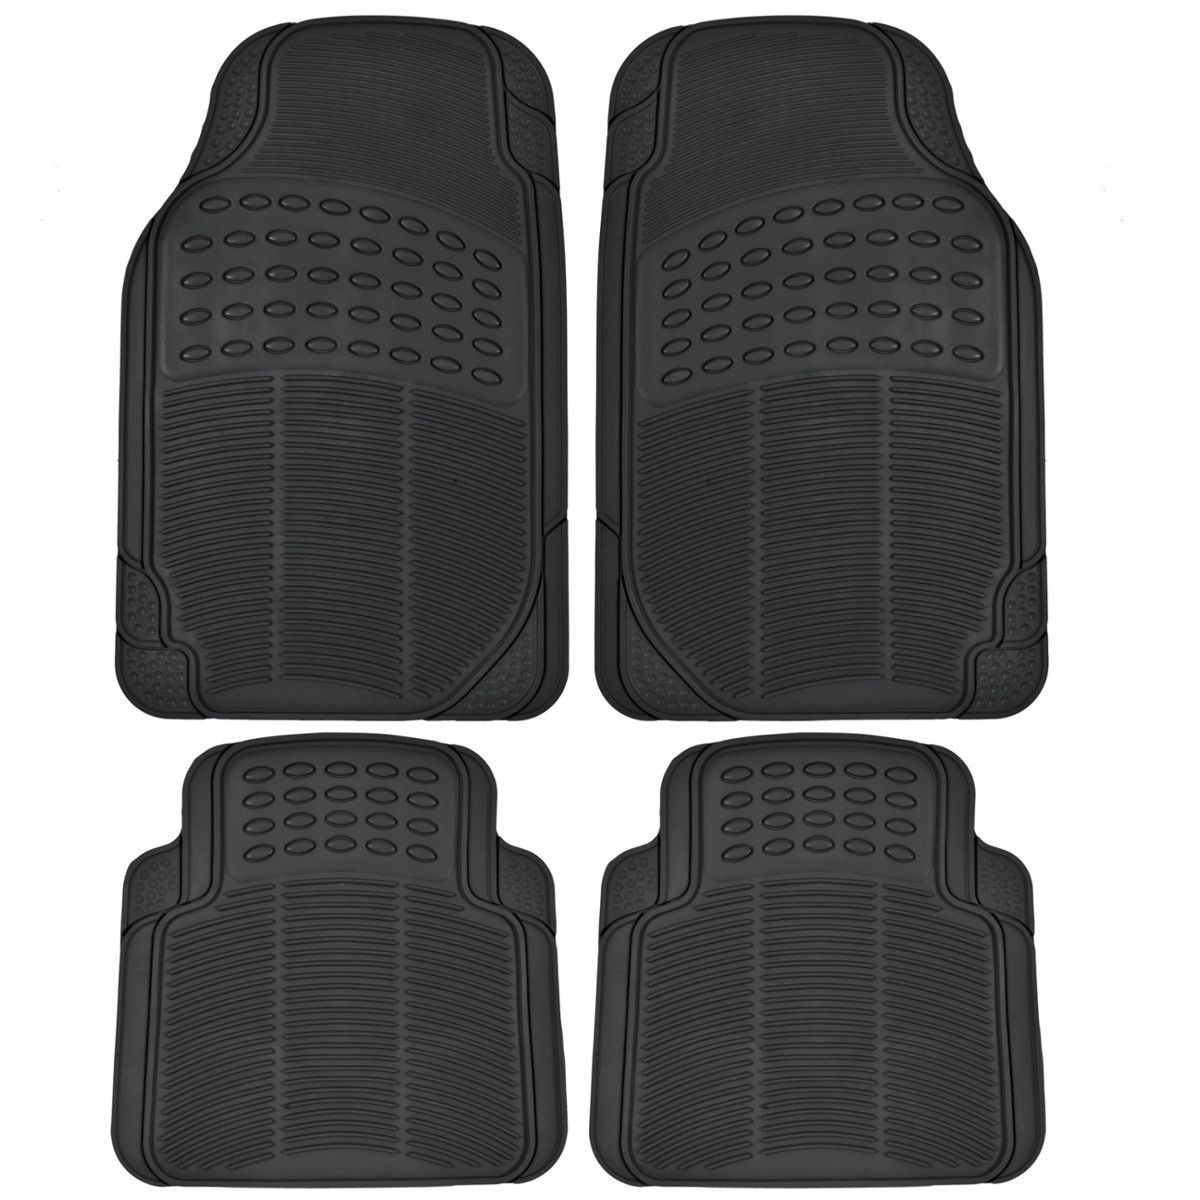 The mt 654 series ridged mats are designed with your auto care in mind the uniquely constructed linear and diagonal ridges are placed strategically to